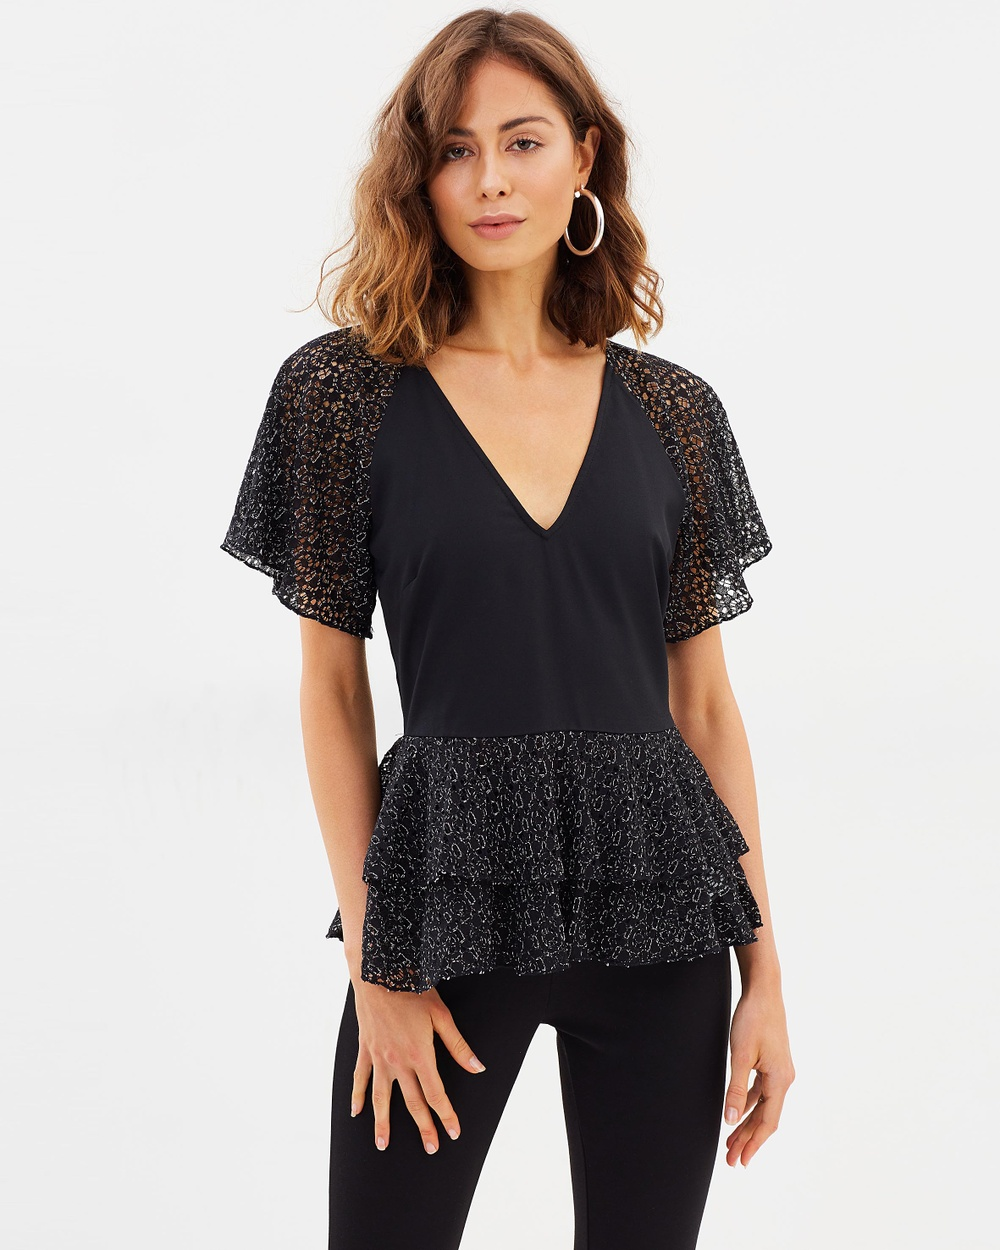 Atmos & Here ICONIC EXCLUSIVE Lily Lace Peplum Top Tops Black Lace ICONIC EXCLUSIVE Lily Lace Peplum Top